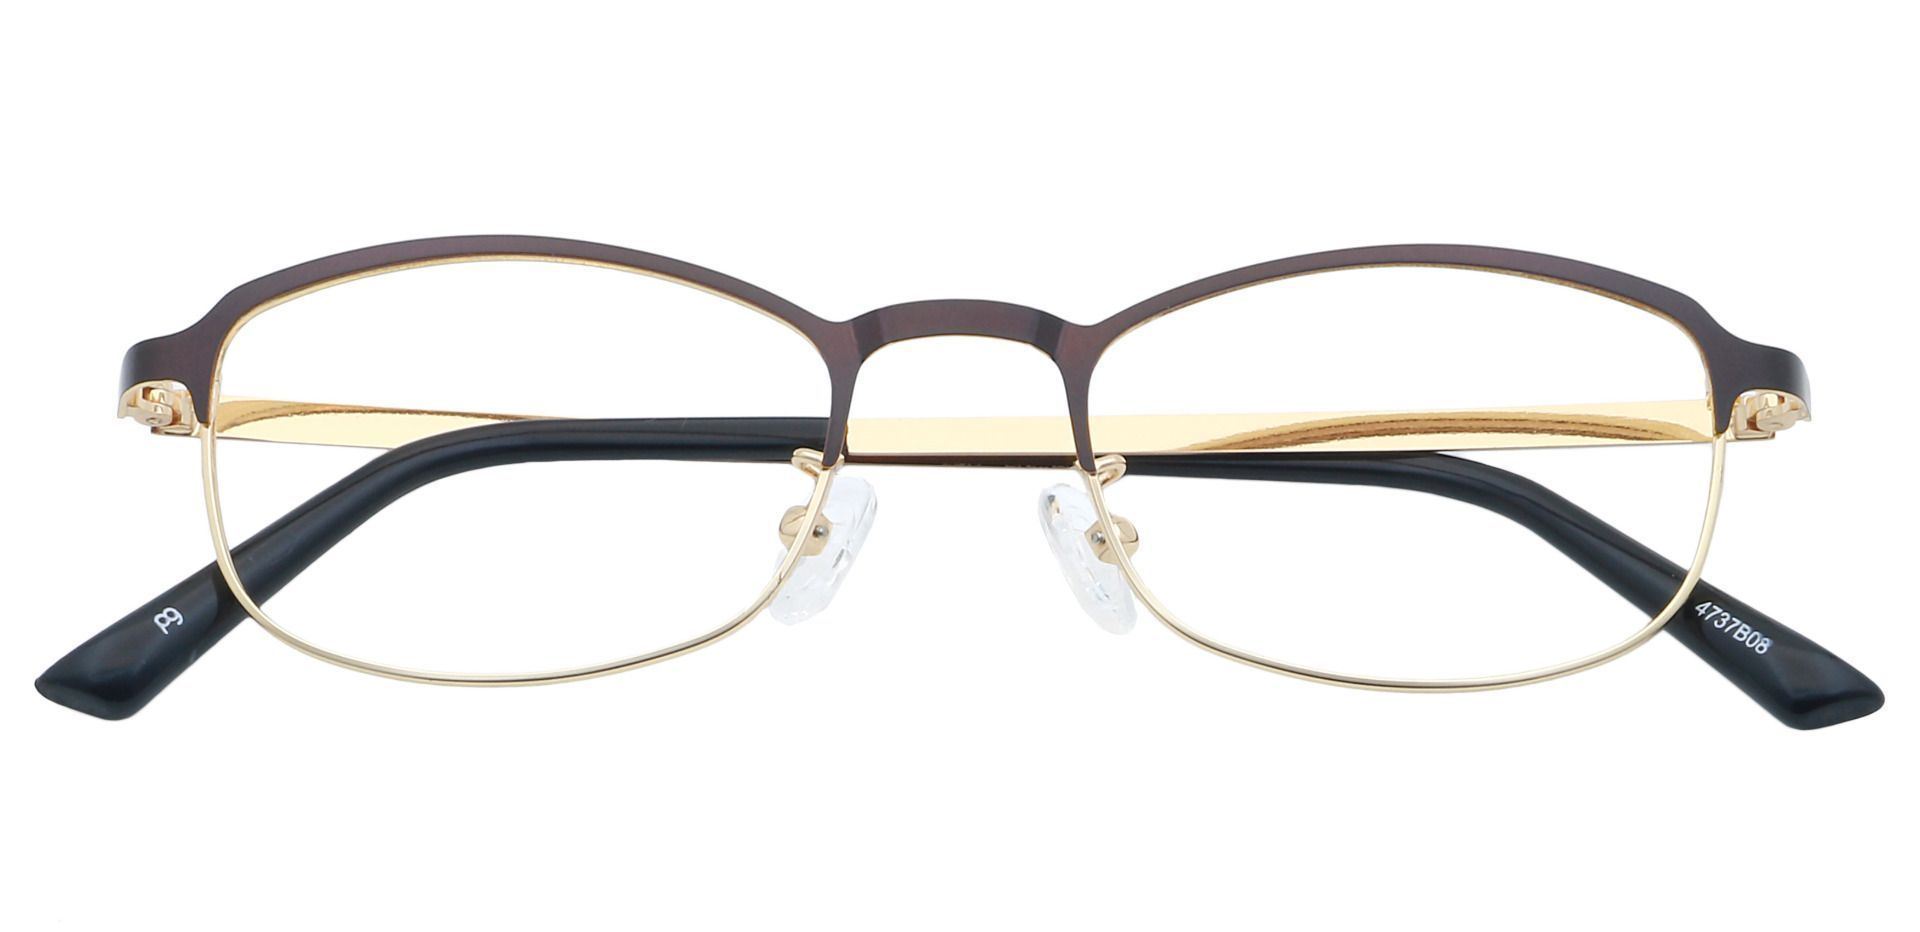 Tyrell Oval Blue Light Blocking Glasses - Brown